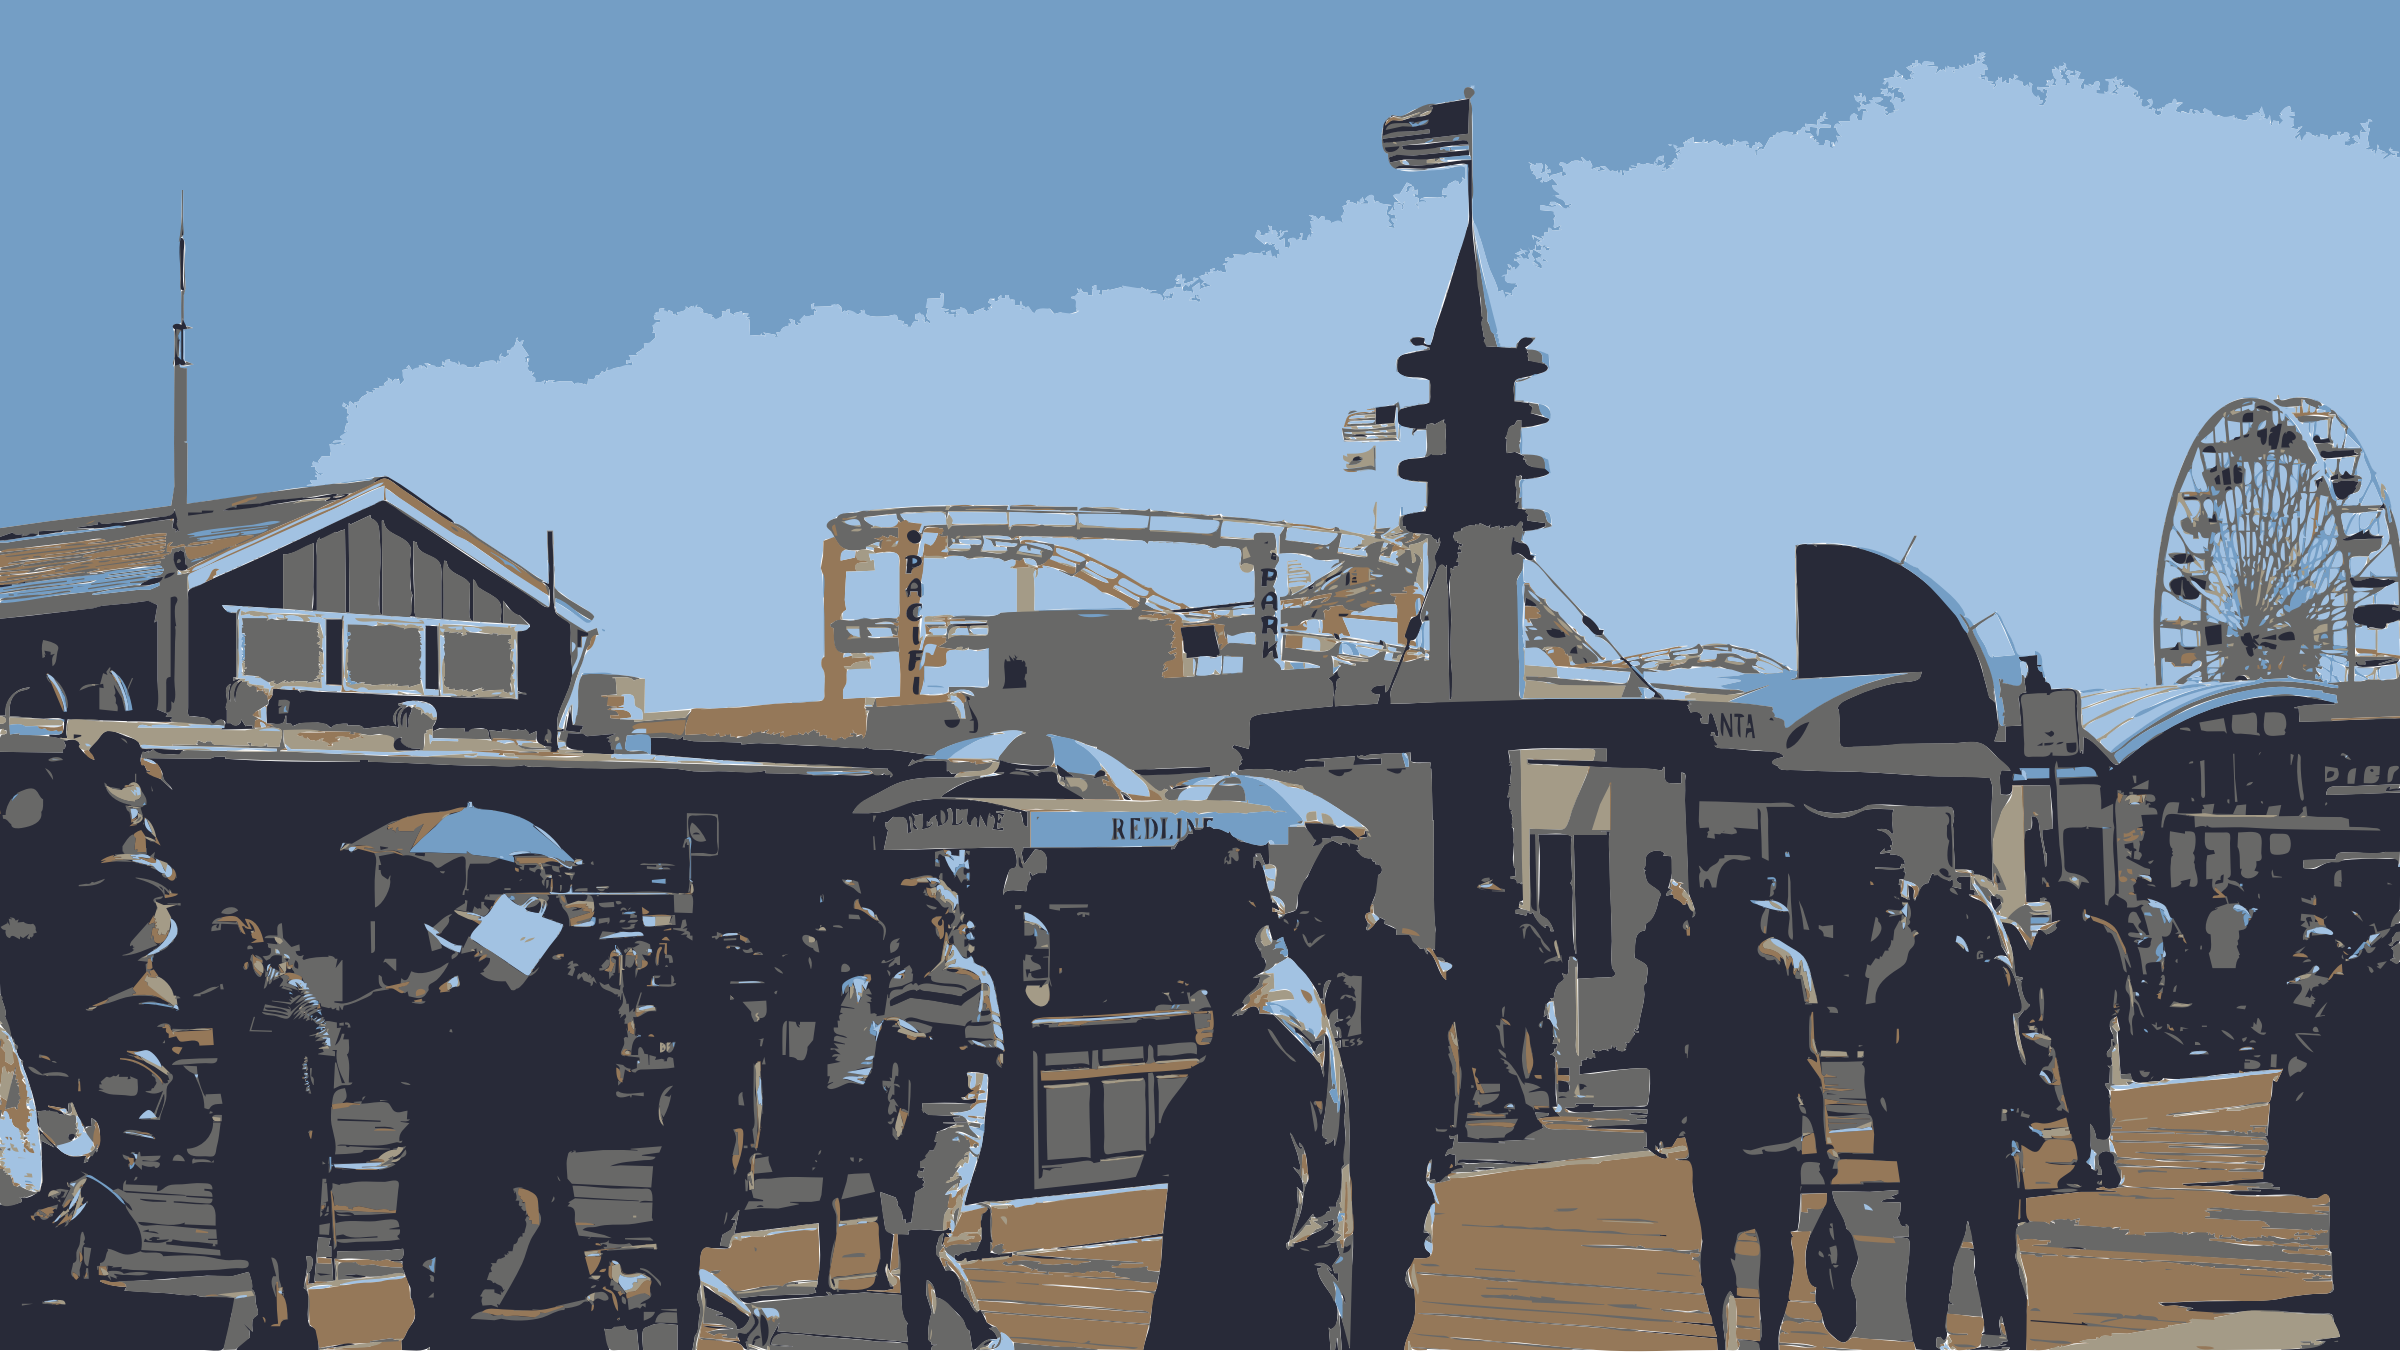 Santa Monica Pier California 2013-08-17 by peteippel